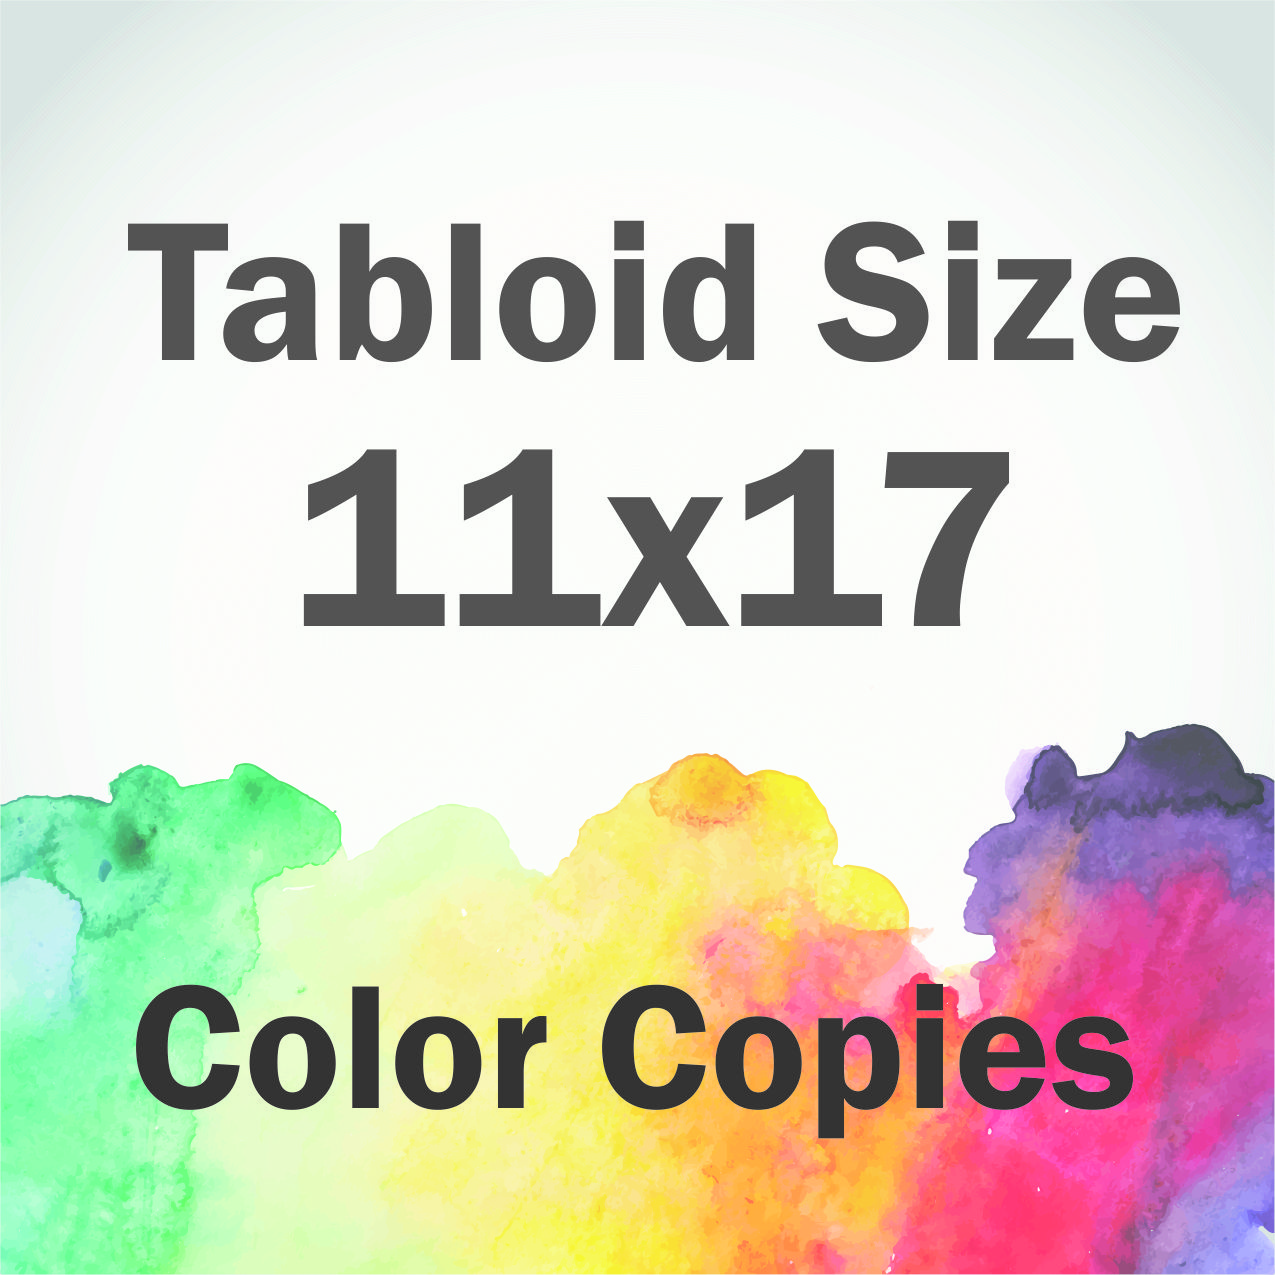 color copies tabloid size